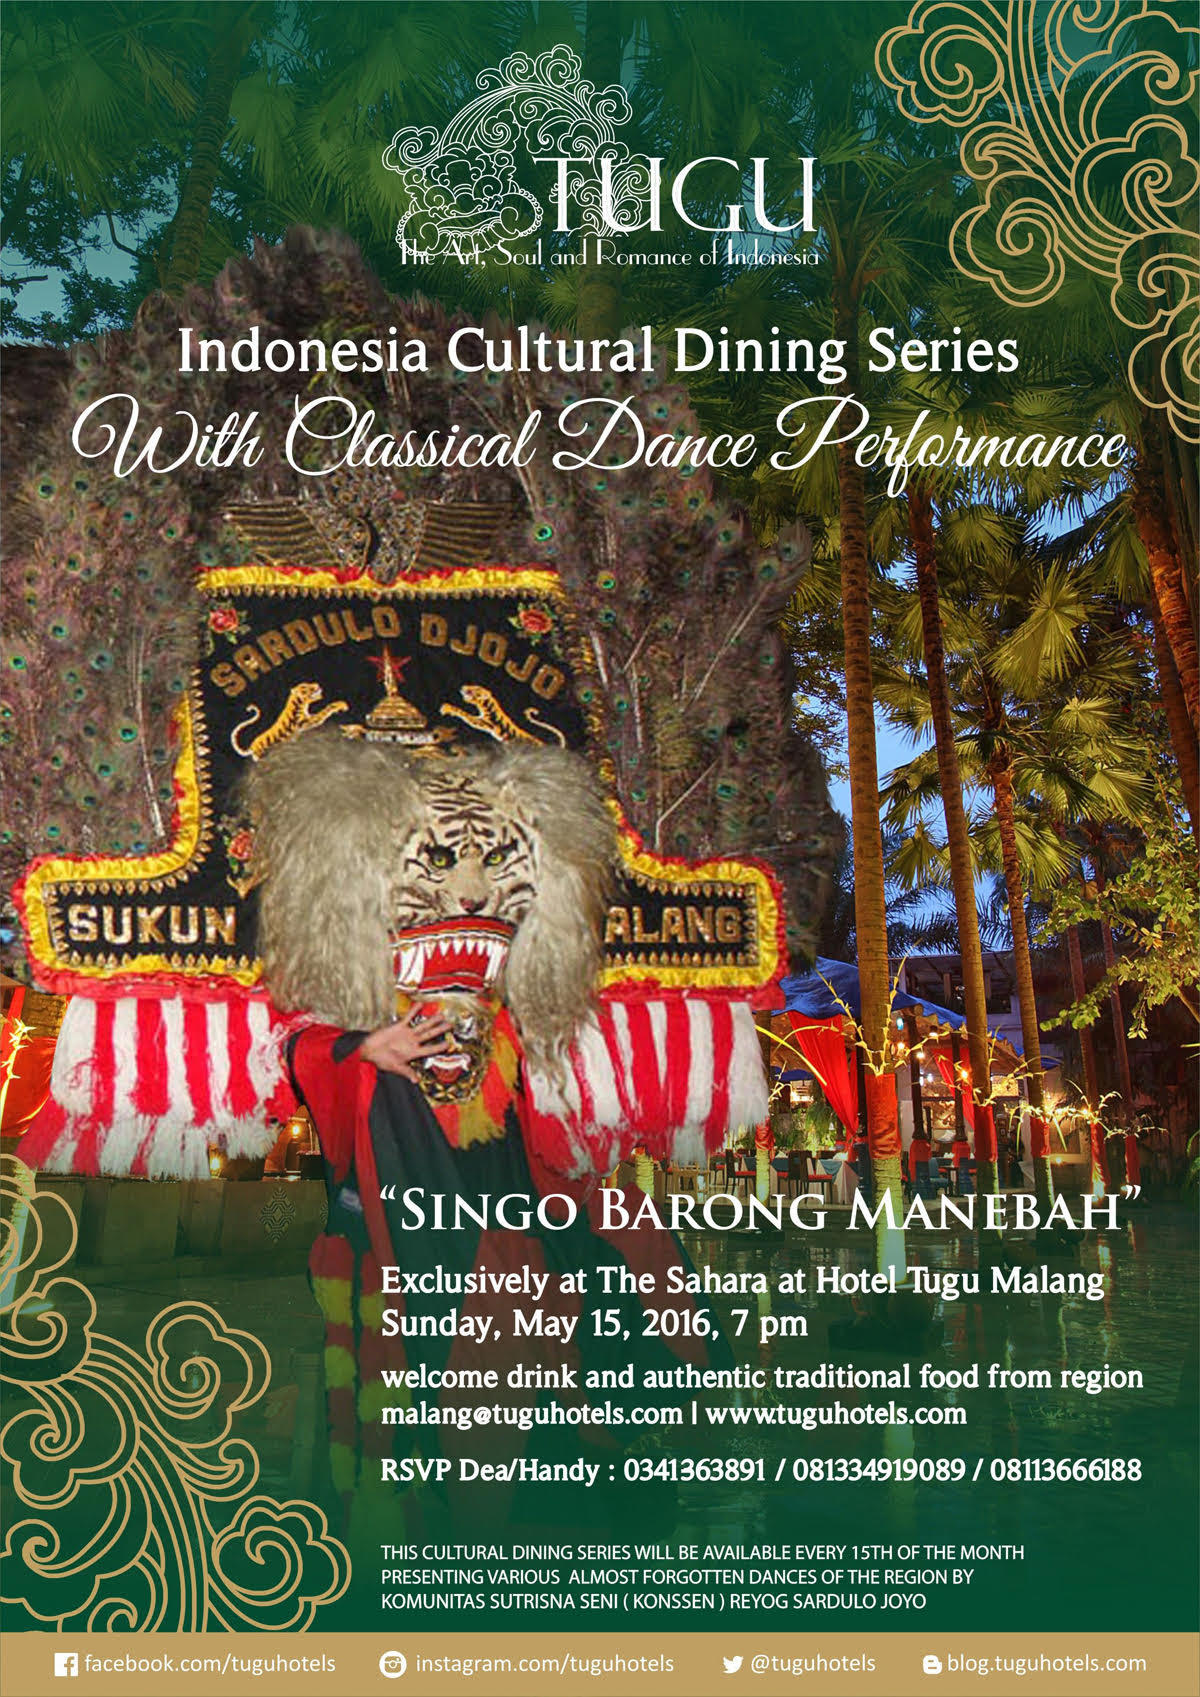 Indonesia Cultural Dining Series With Classical Dance Performance quot;Singo Barong Manebahquot;  What